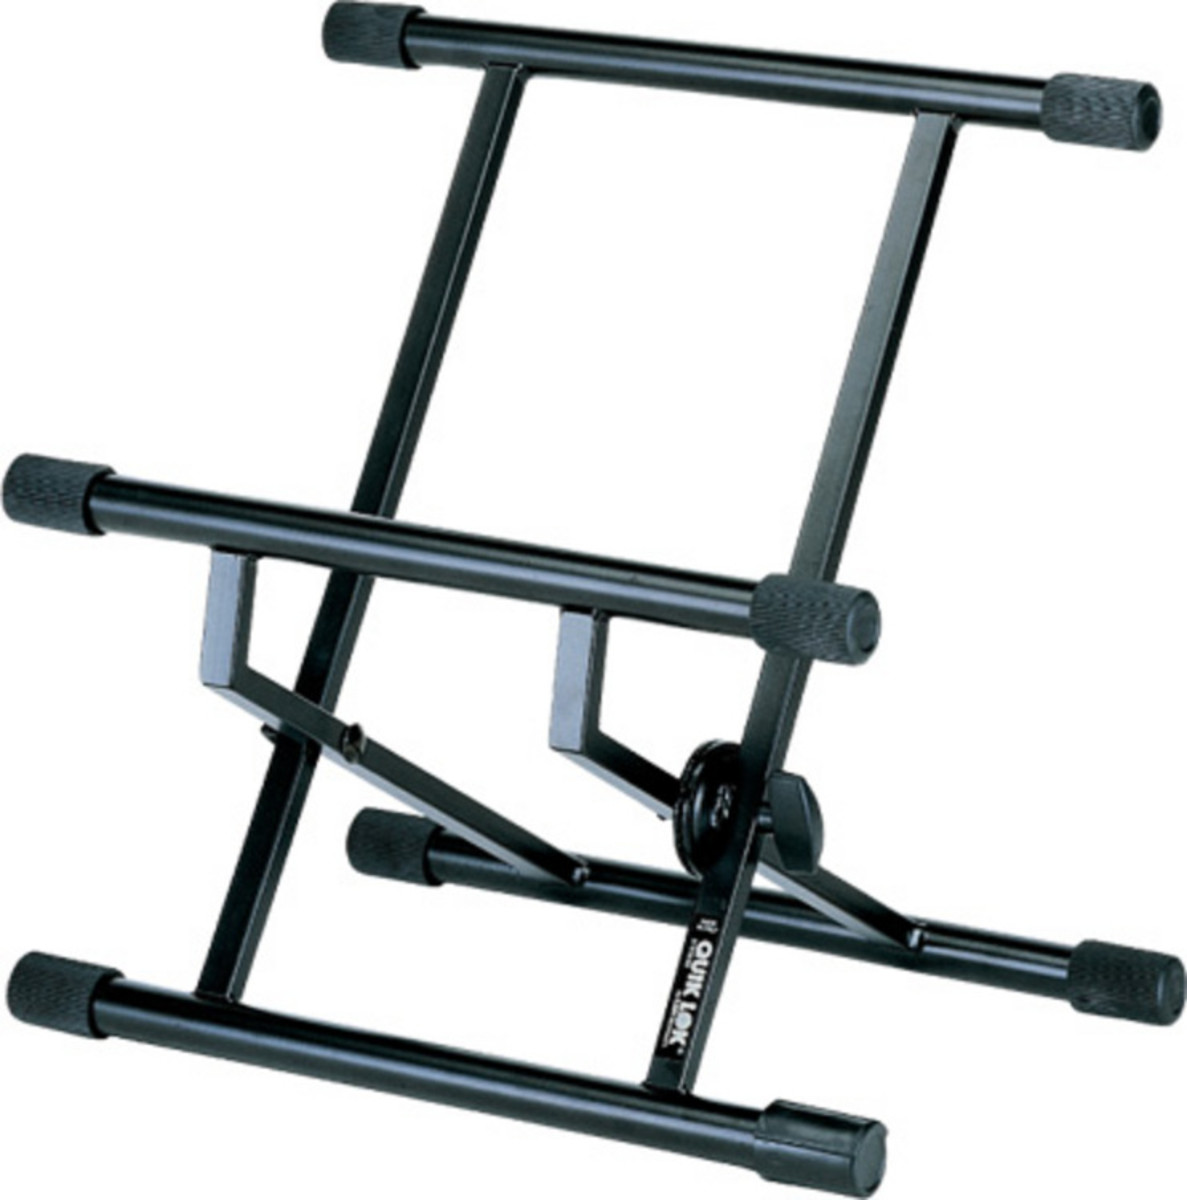 Quiklok Bs 317 Double Braced Amp Monitor Stand At